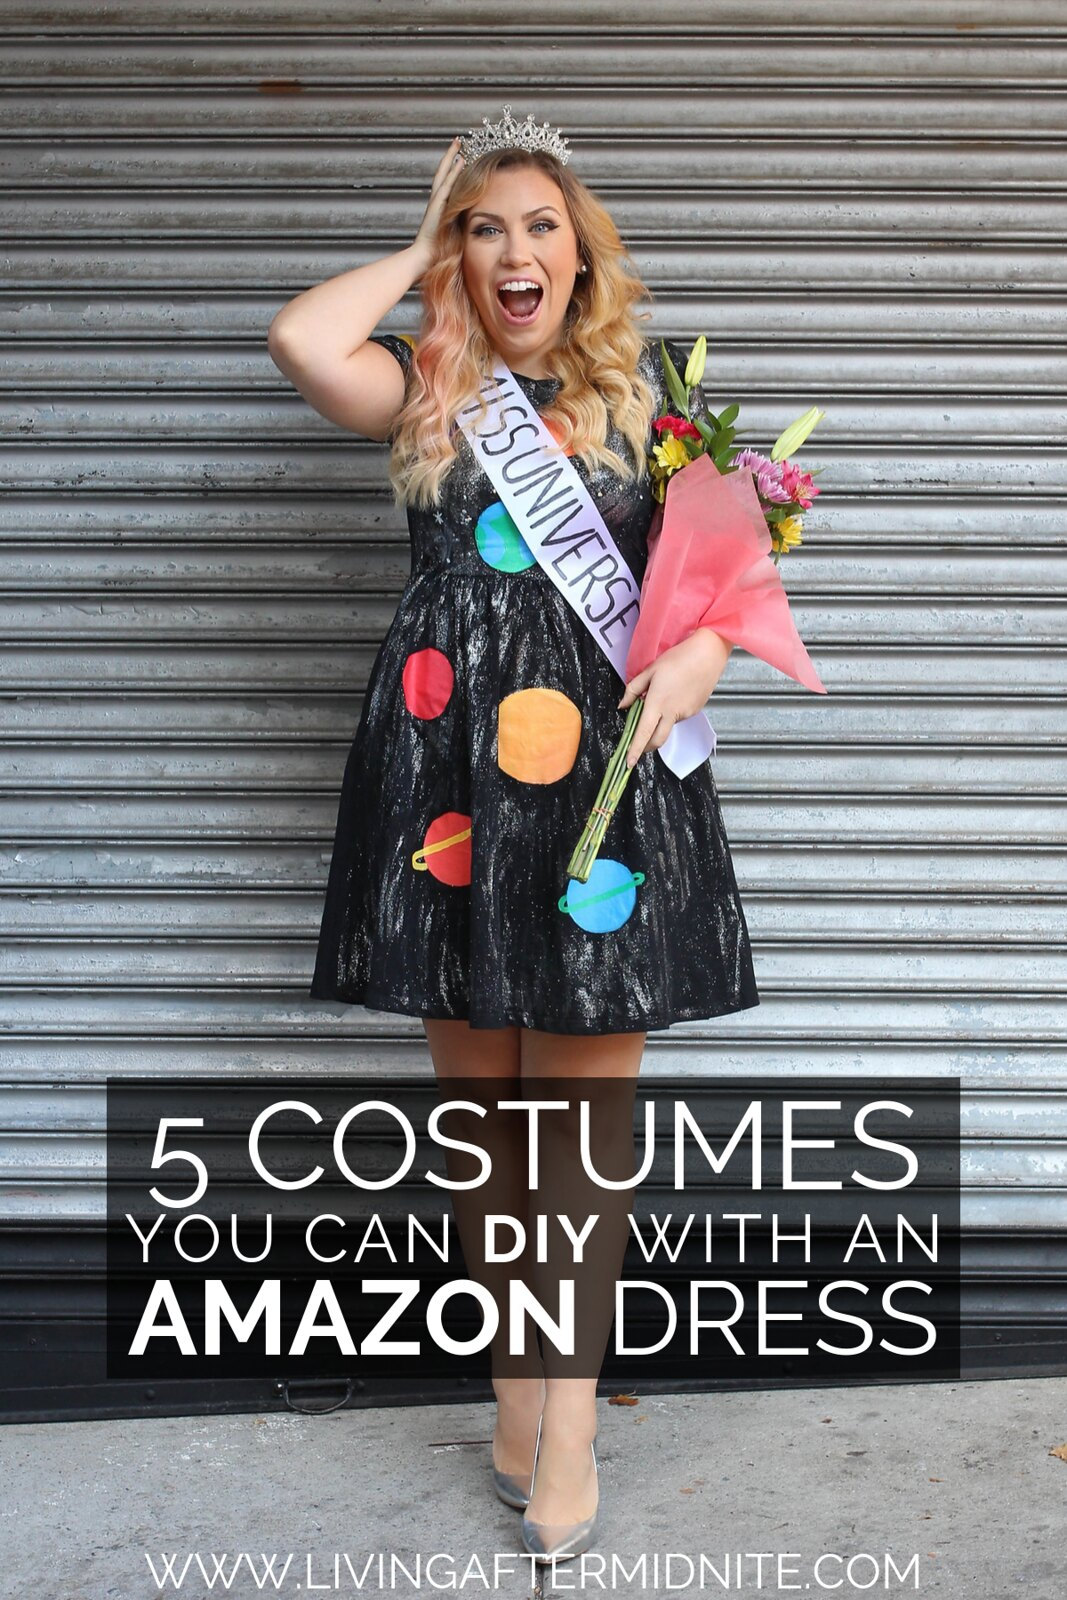 Miss Universe DIY Costume | 5 Costumes You Can DIY with an Amazon Dress | Easy DIY Halloween Costumes